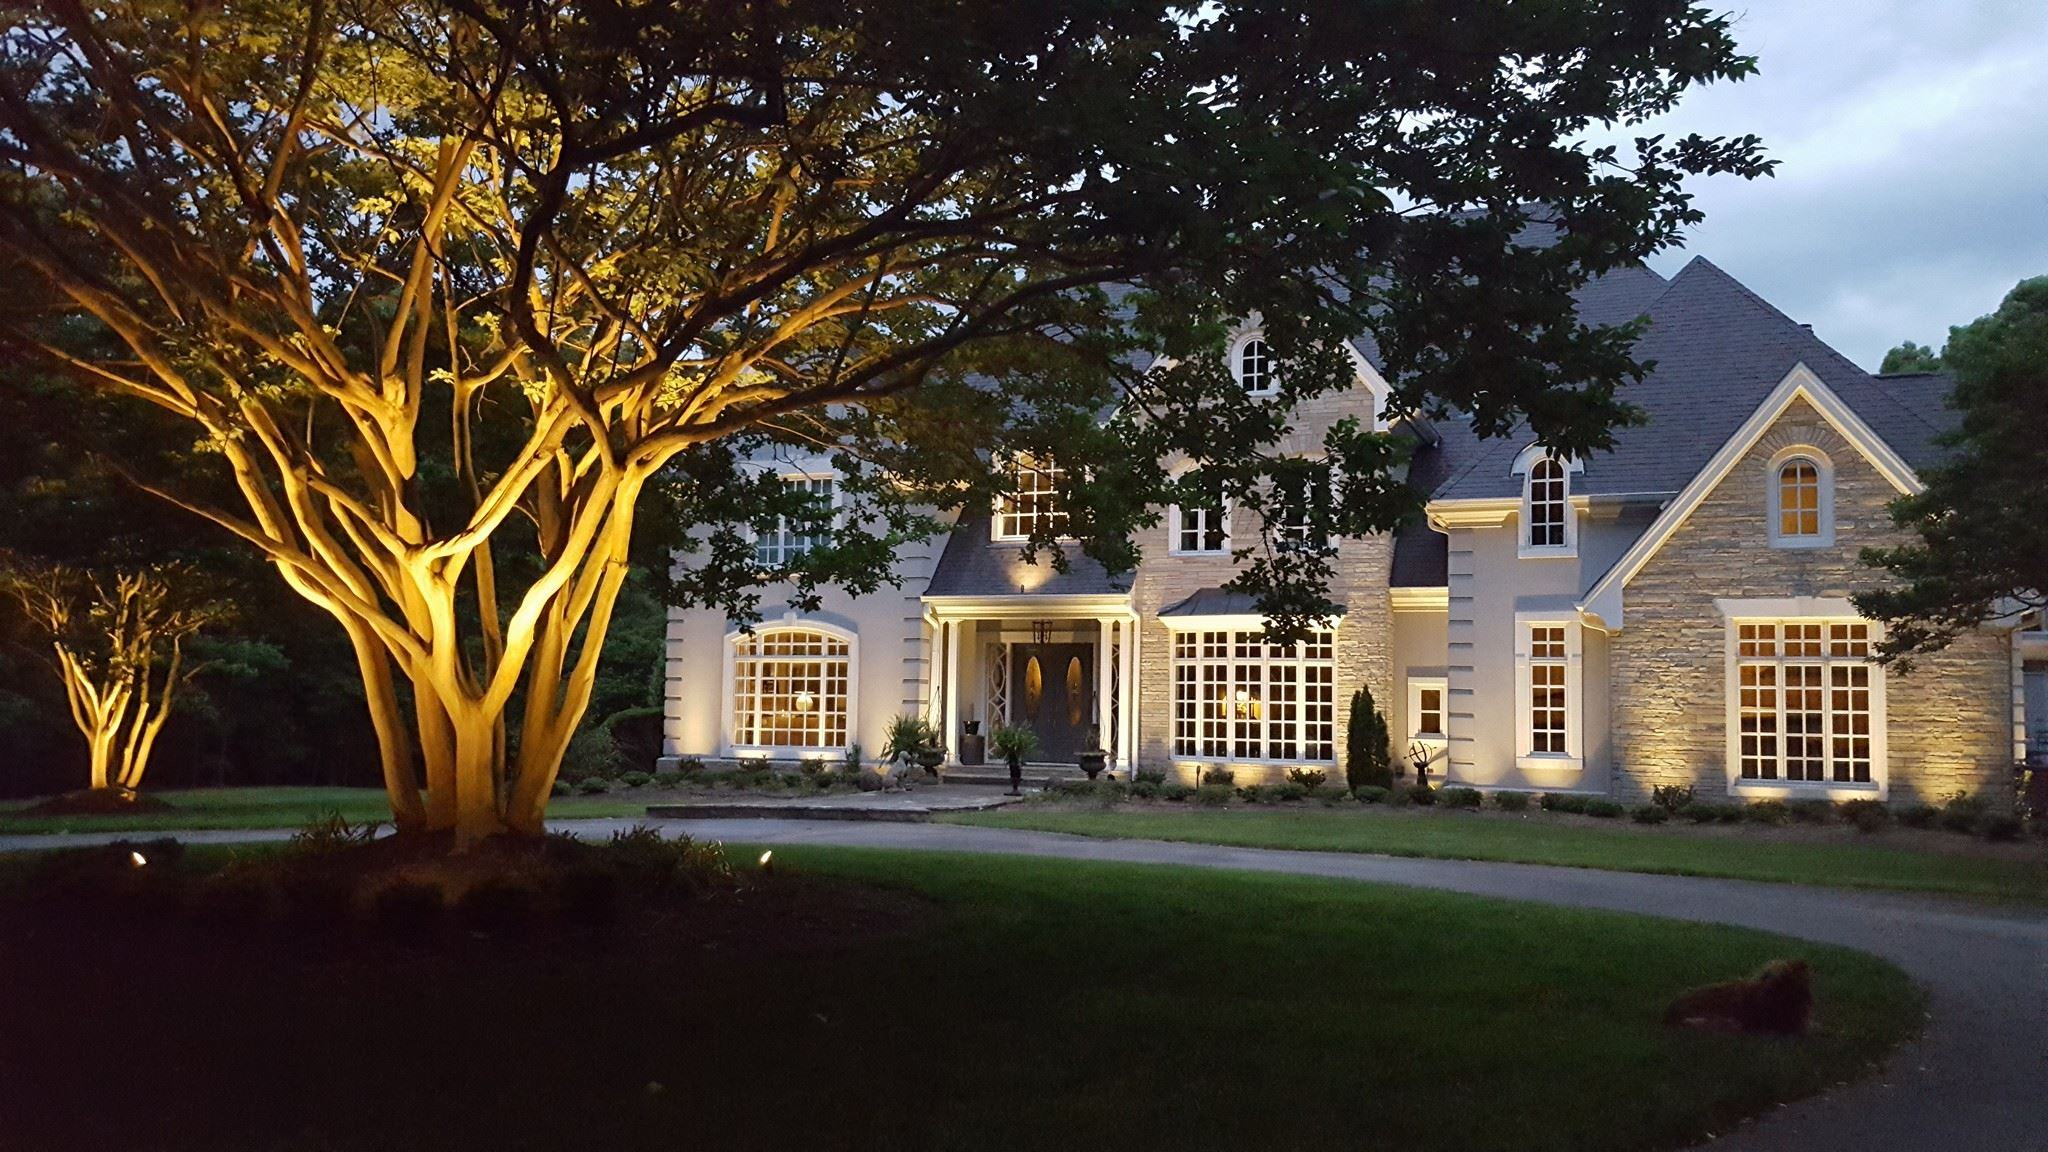 outdoor lighting installer in Apex NC